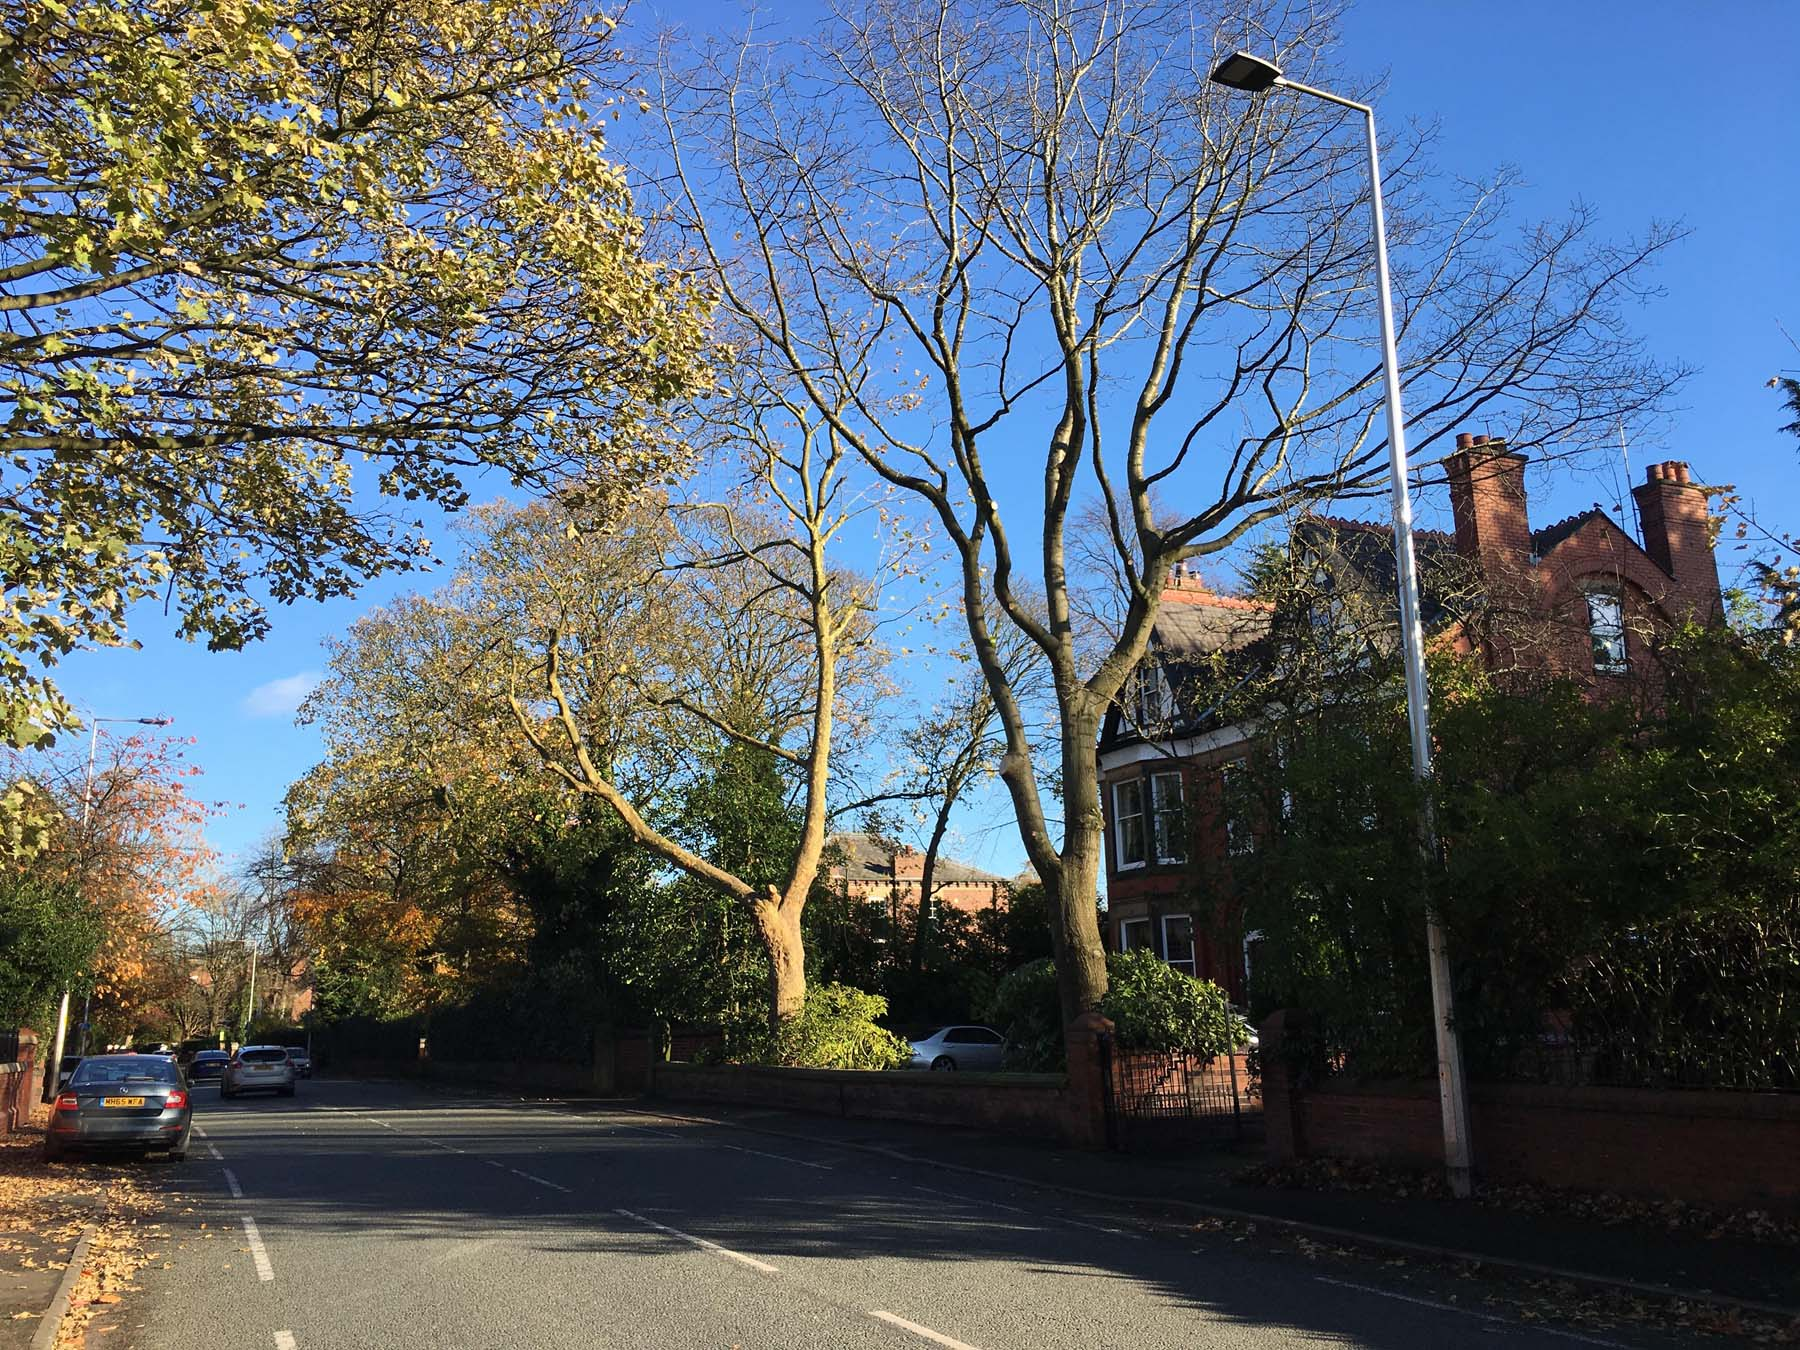 Tree Surgeon Crown lifting Service 4